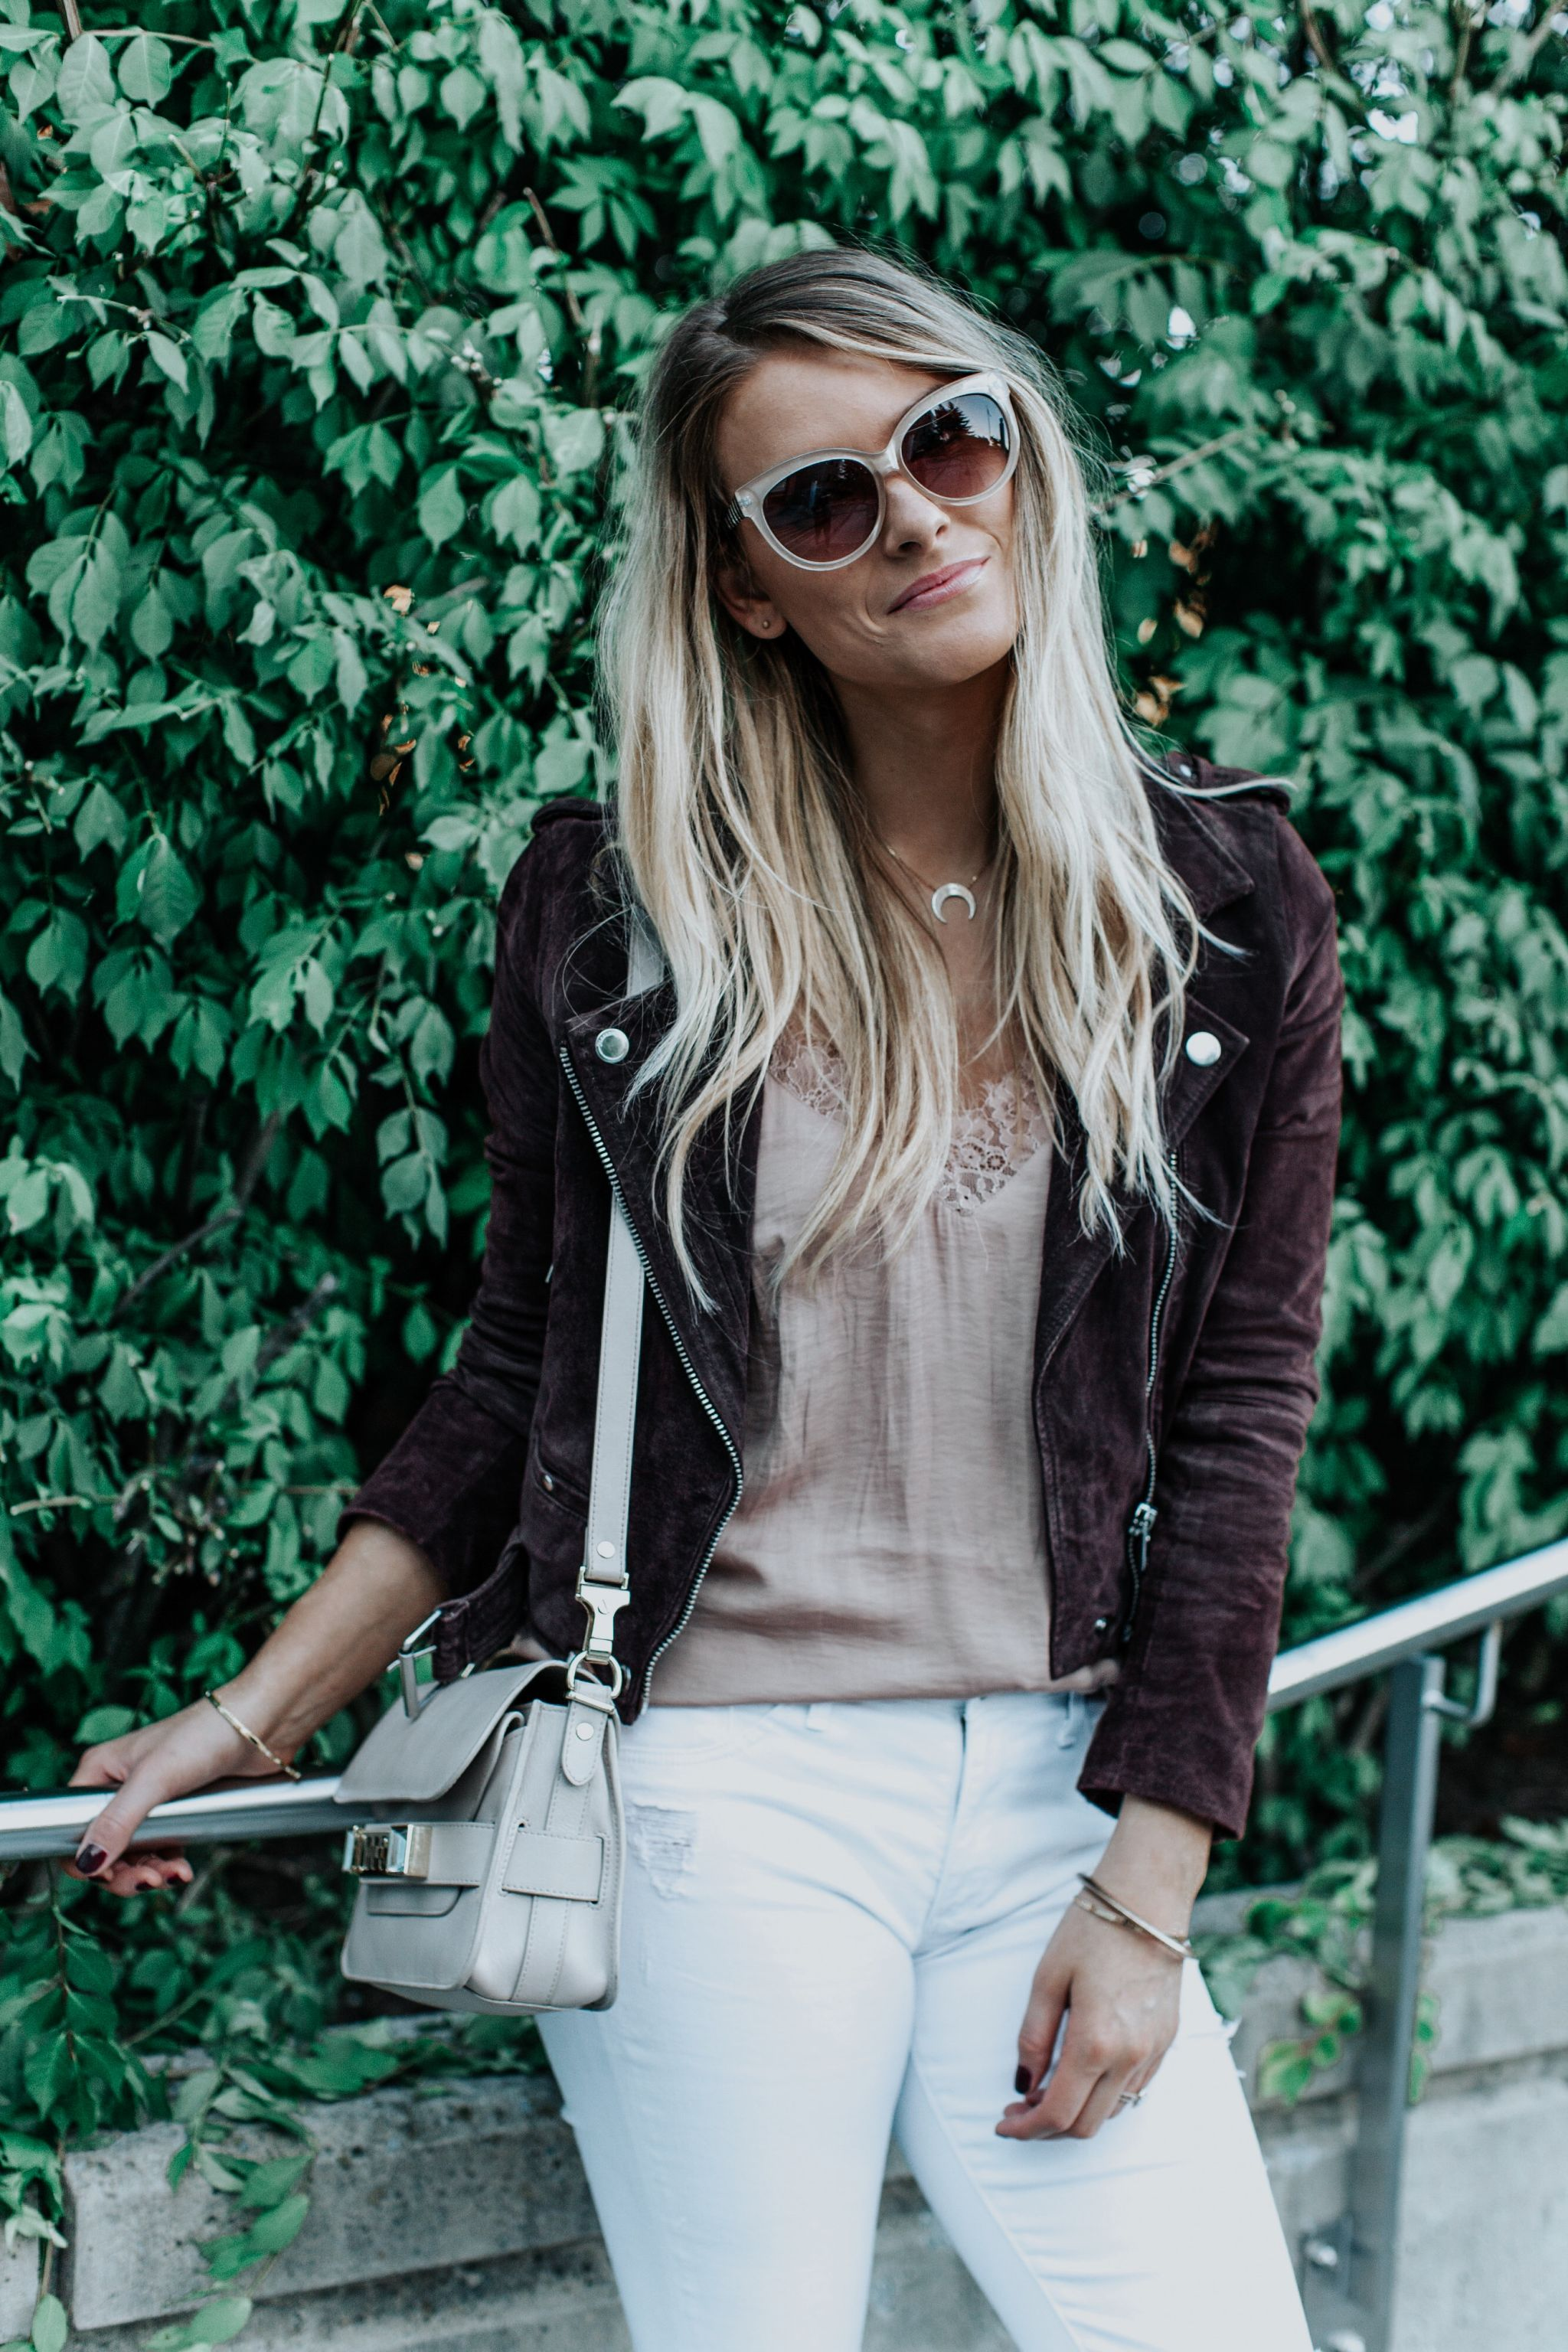 1 person, girl wearing blush cami and suede jacket